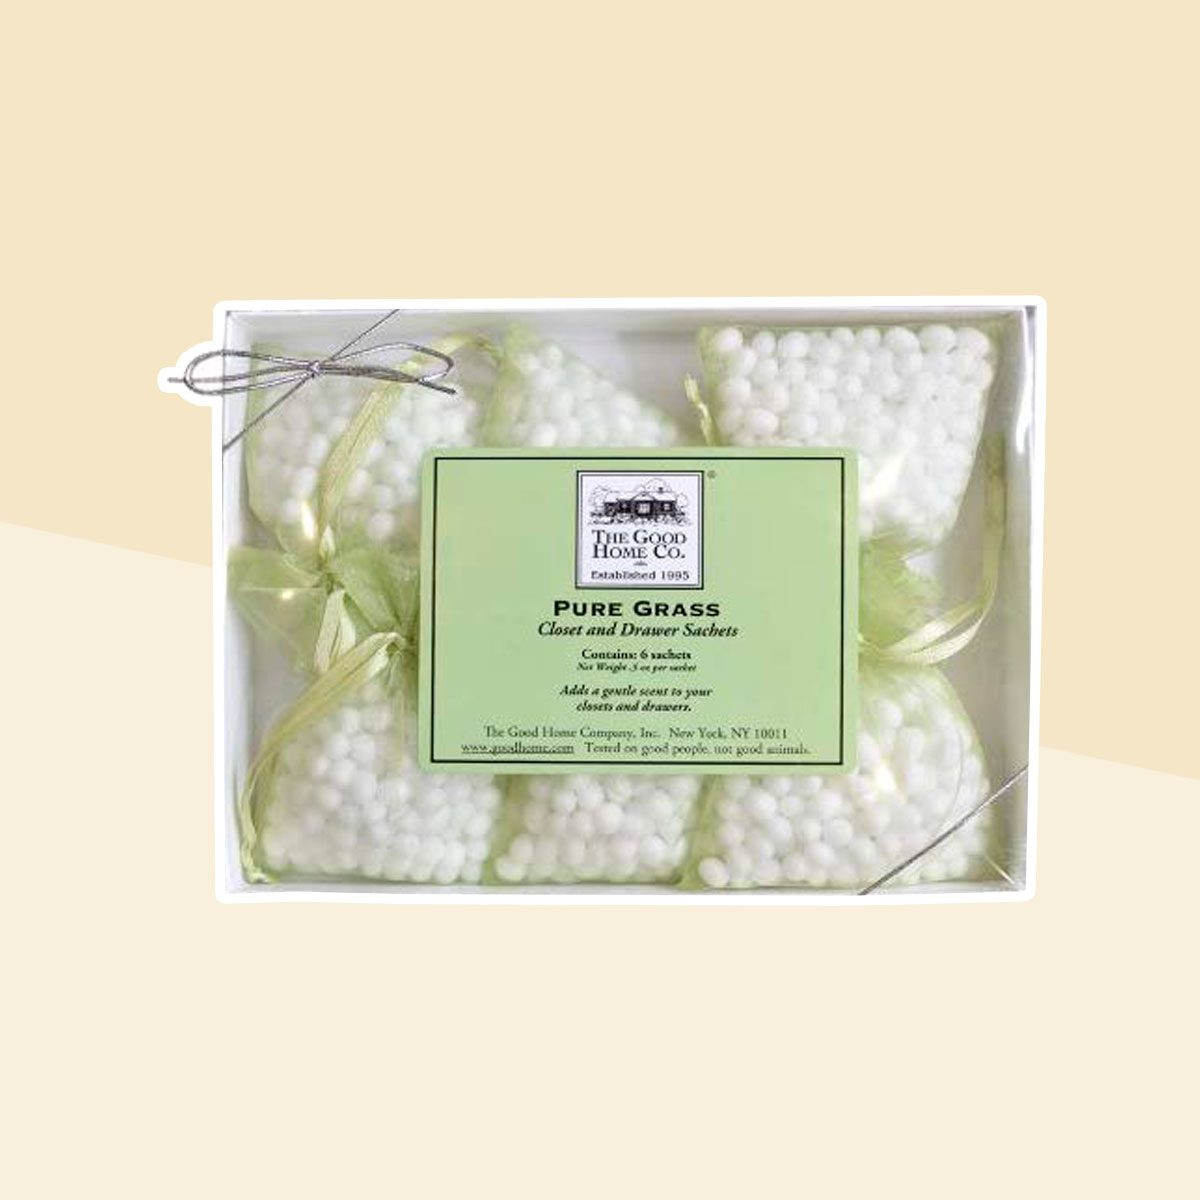 The Good Home Co Closet and Drawer Sachets